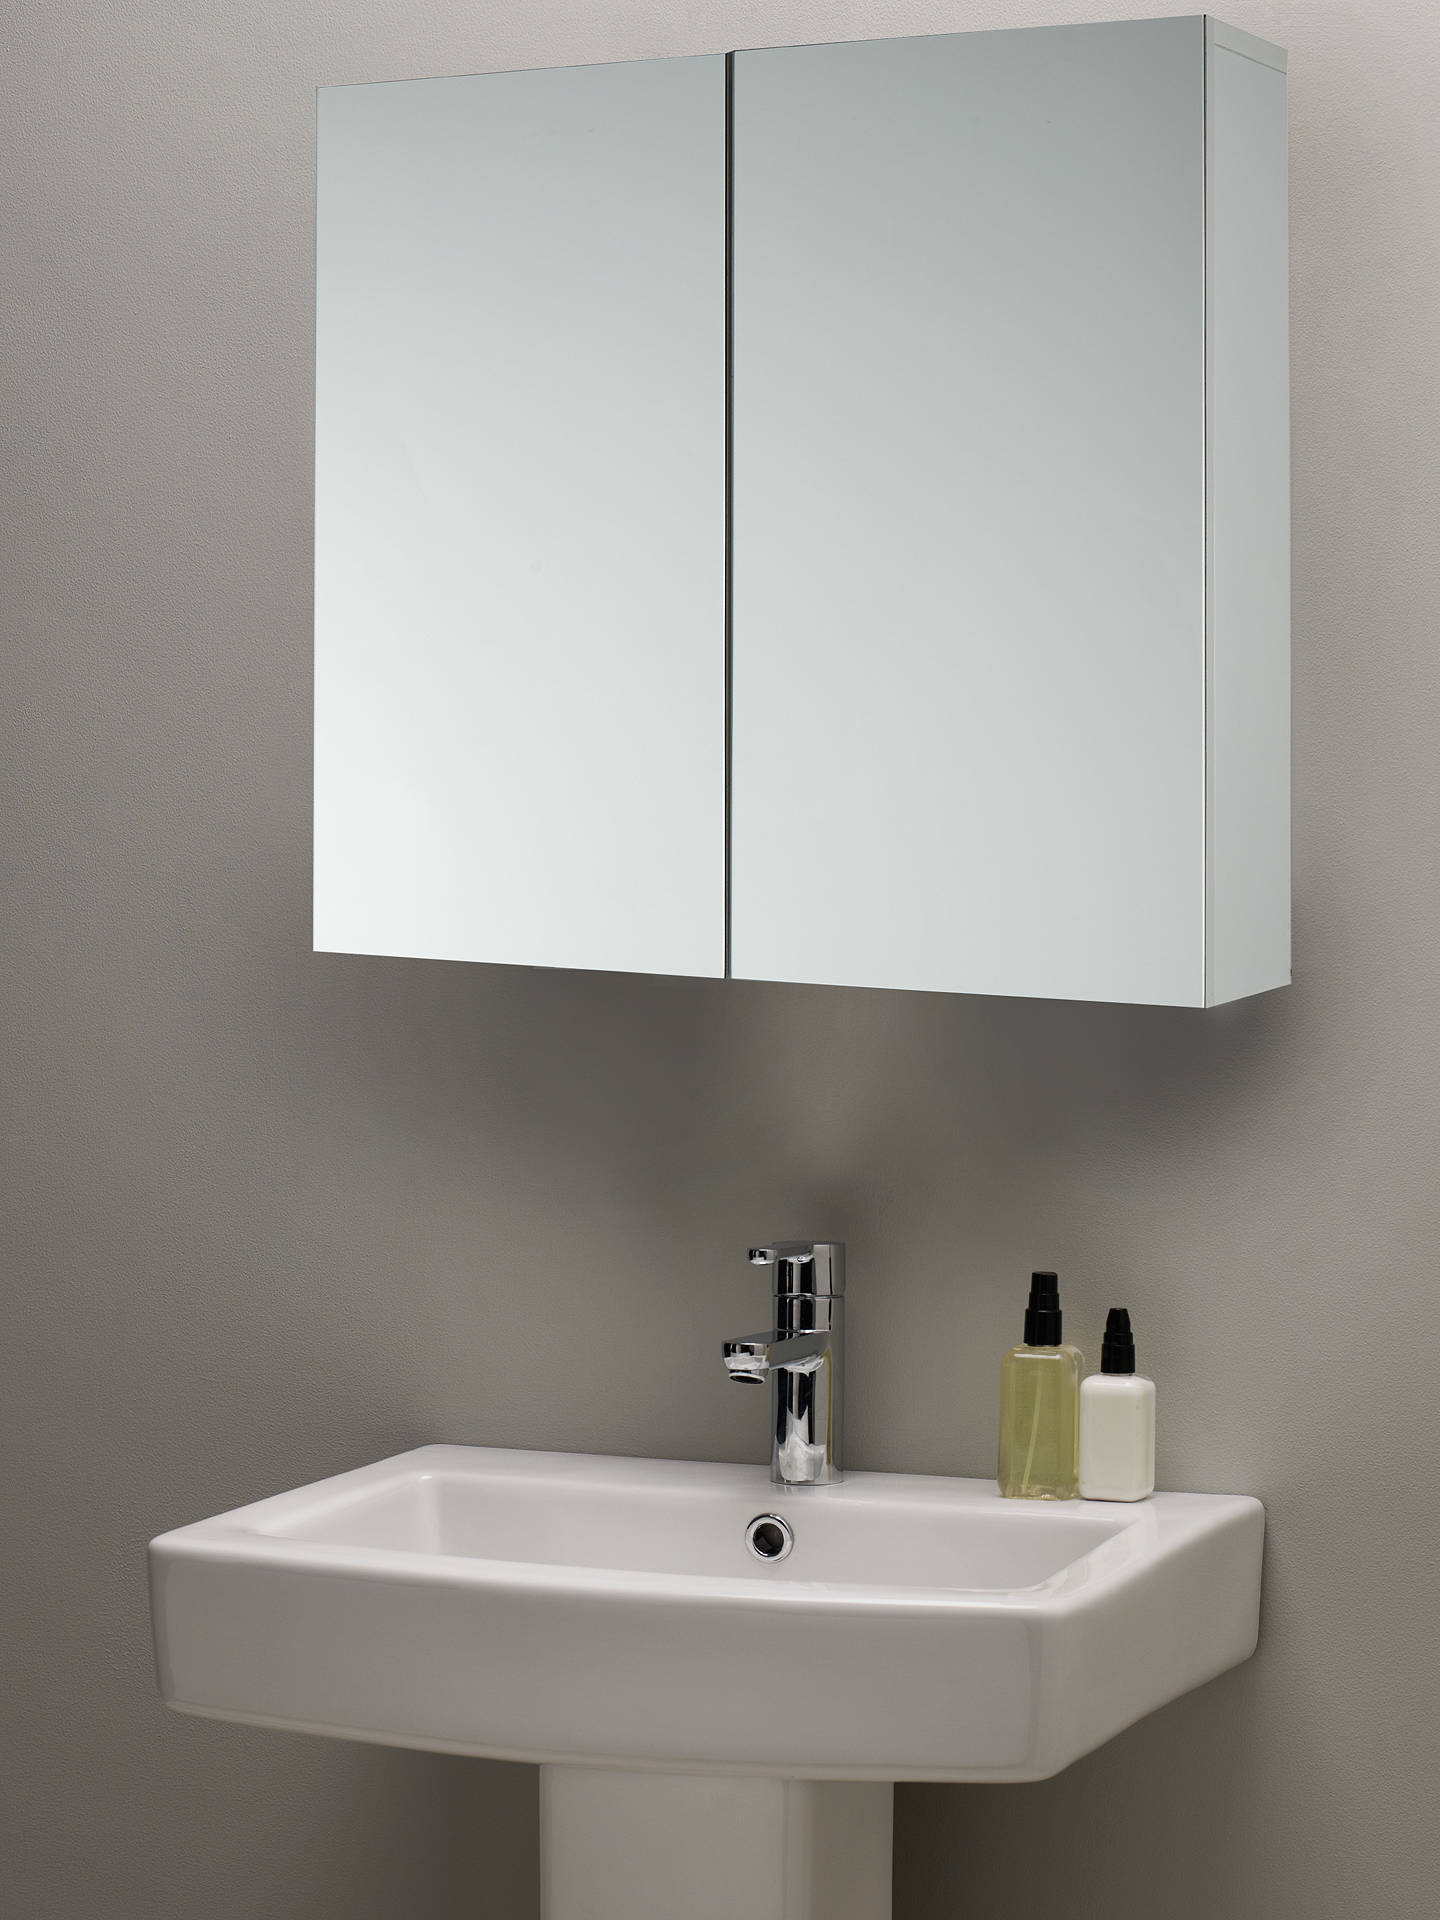 BuyJohn Lewis & Partners Double Mirrored Bathroom Cabinet, White Online at johnlewis.com